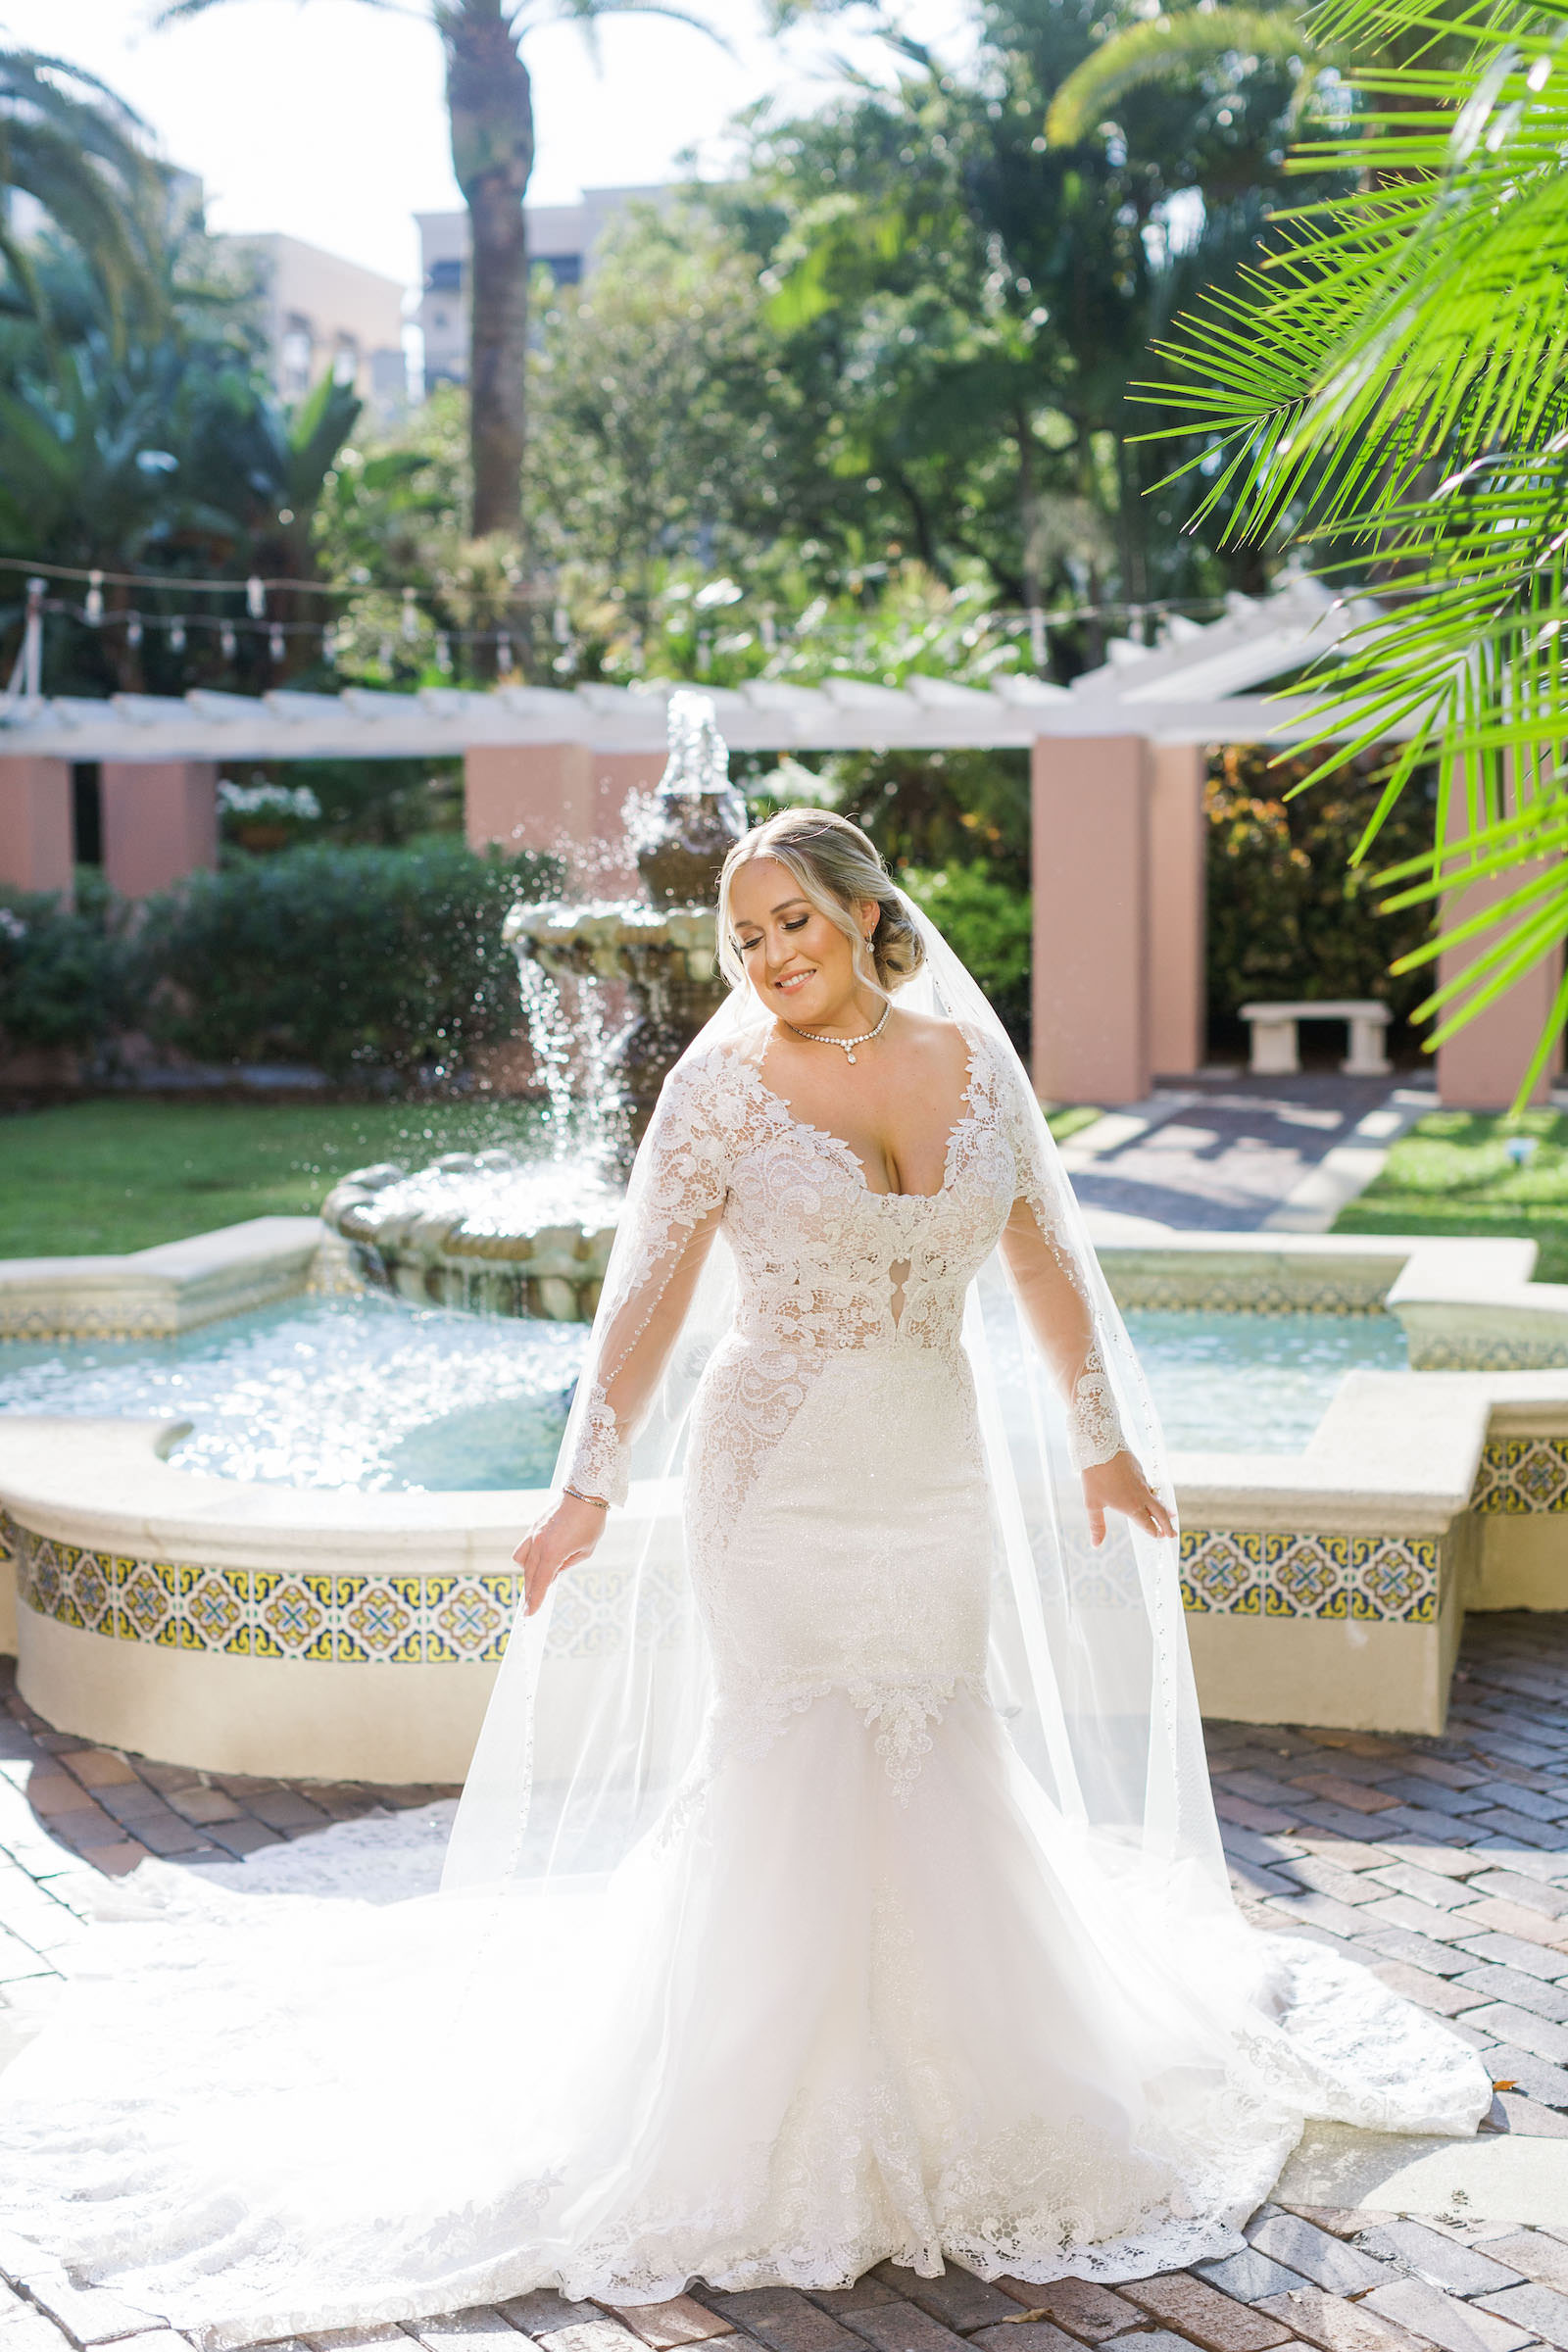 Tampa Bride Wearing Long Sleeve Lace and Illusion Plunging Neckline Wedding Dress in Front of Courtyard Water Fountain at St. Pete Vinoy Renaissance